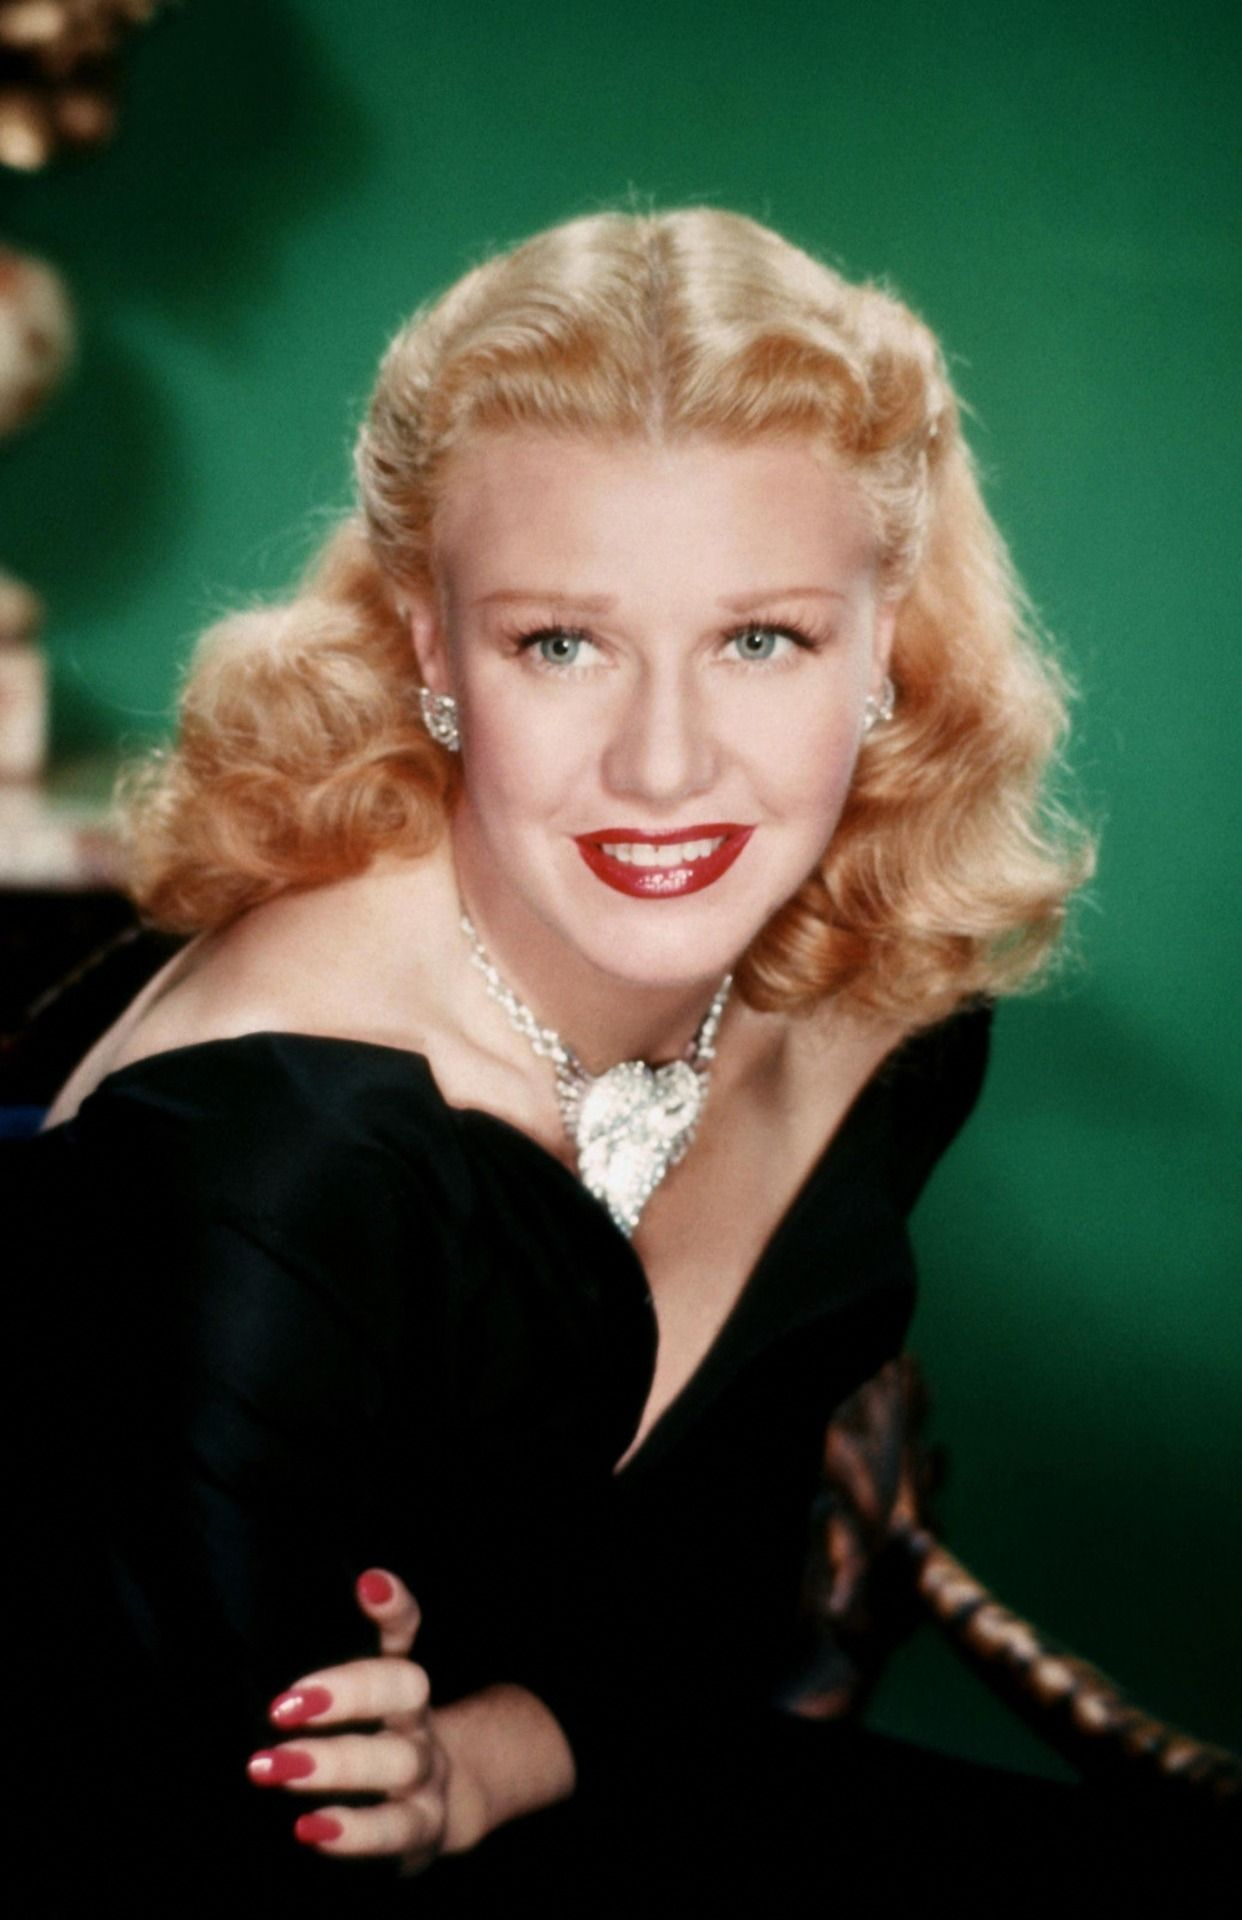 Ginger Rogers Color Portrait You Can See Here How Her Eyes Look Greenish From A Distance While They Re Actually Color Blue Ginger Rogers Hollywood Actresses